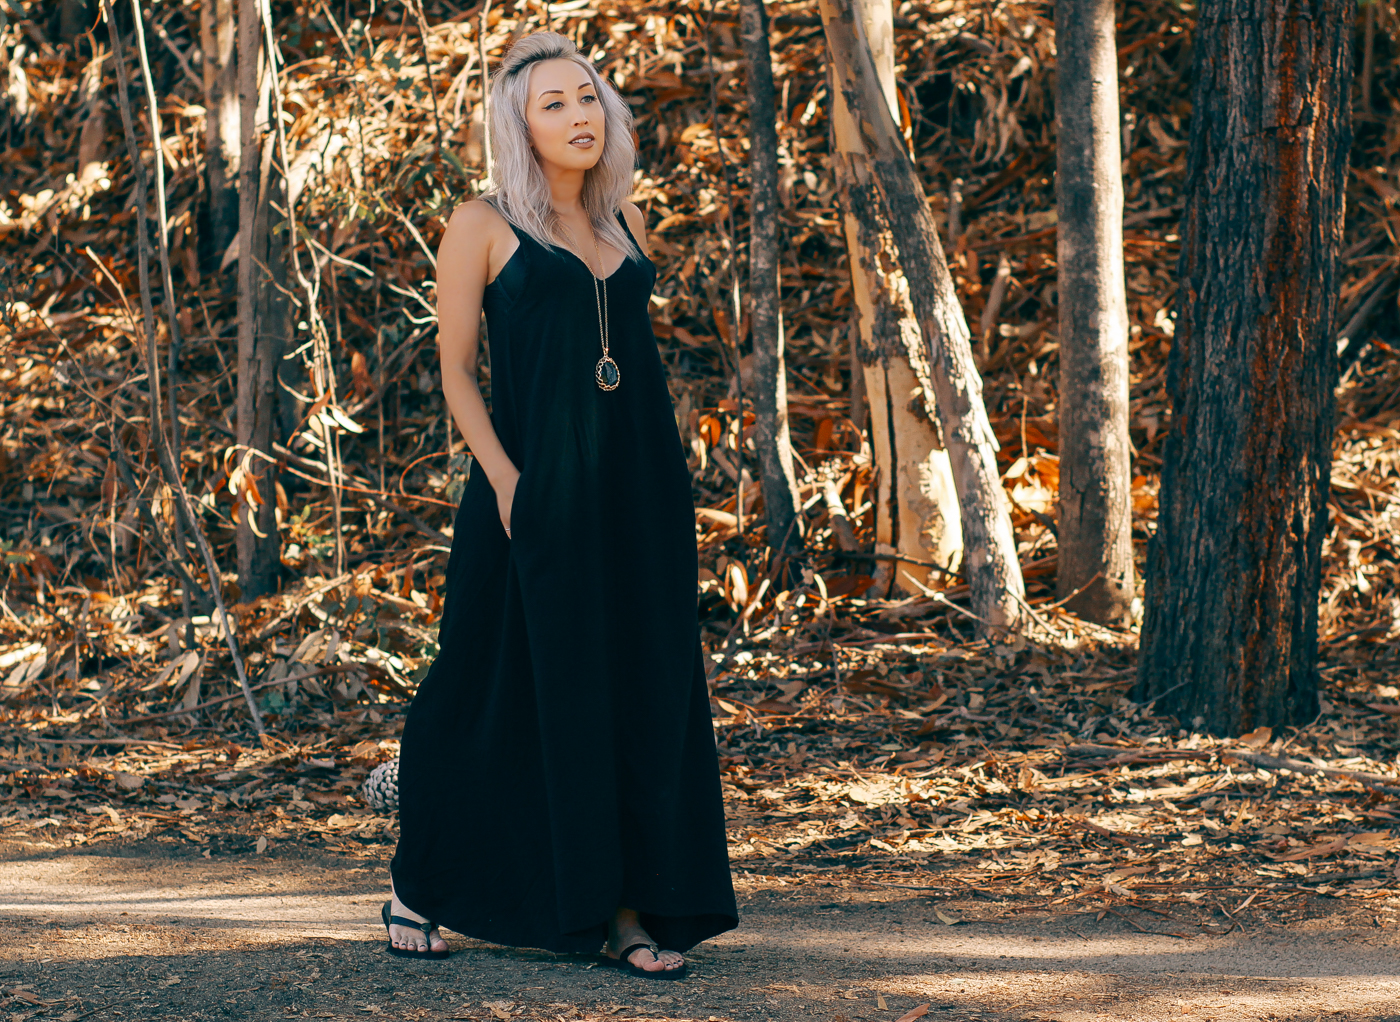 Blondie in the City | Low Cut Black Maxi Dress